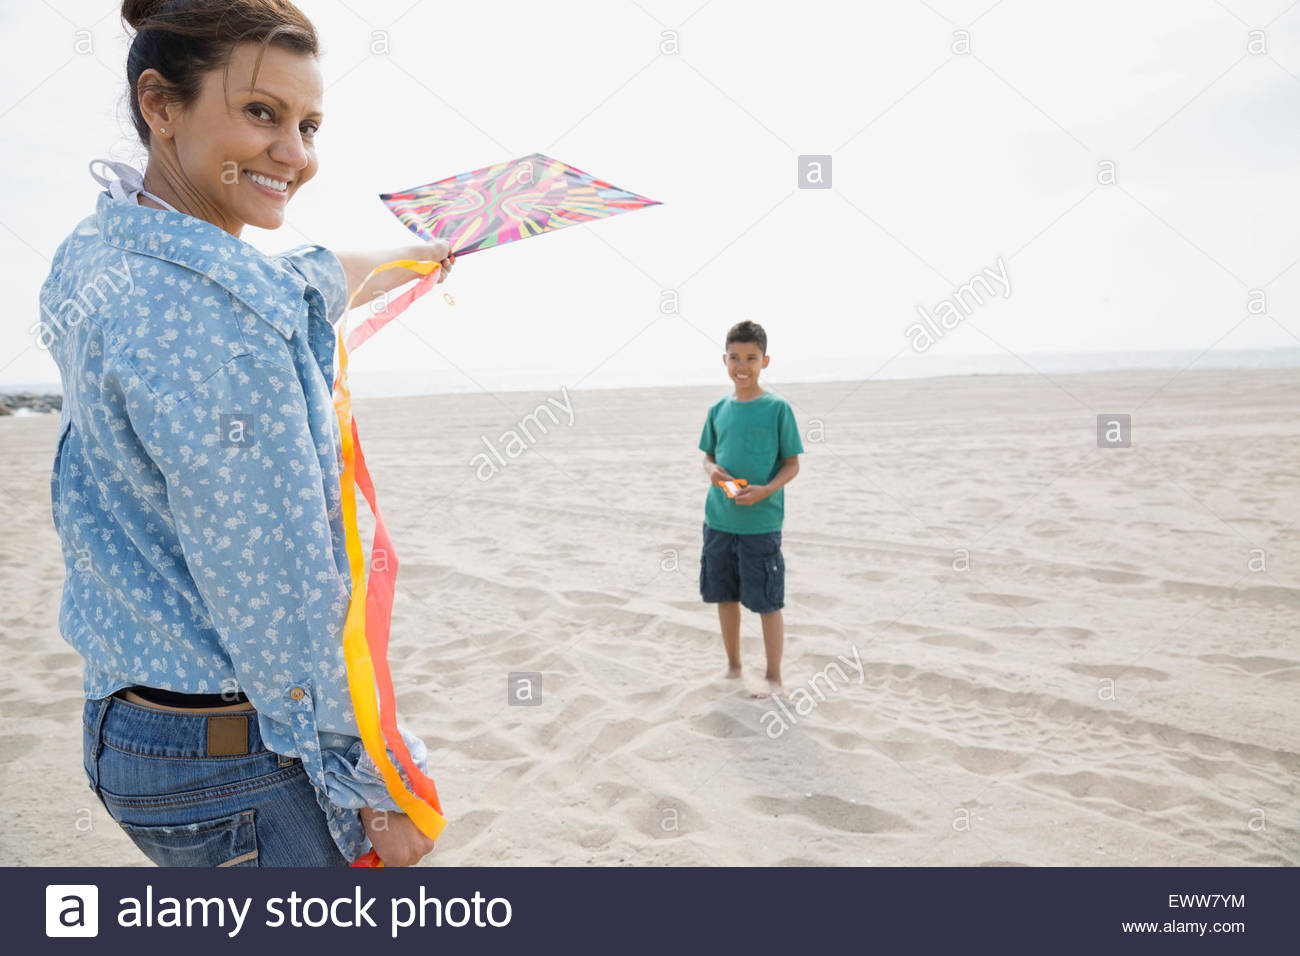 Portrait mother and son flying kite at beach - Stock Image